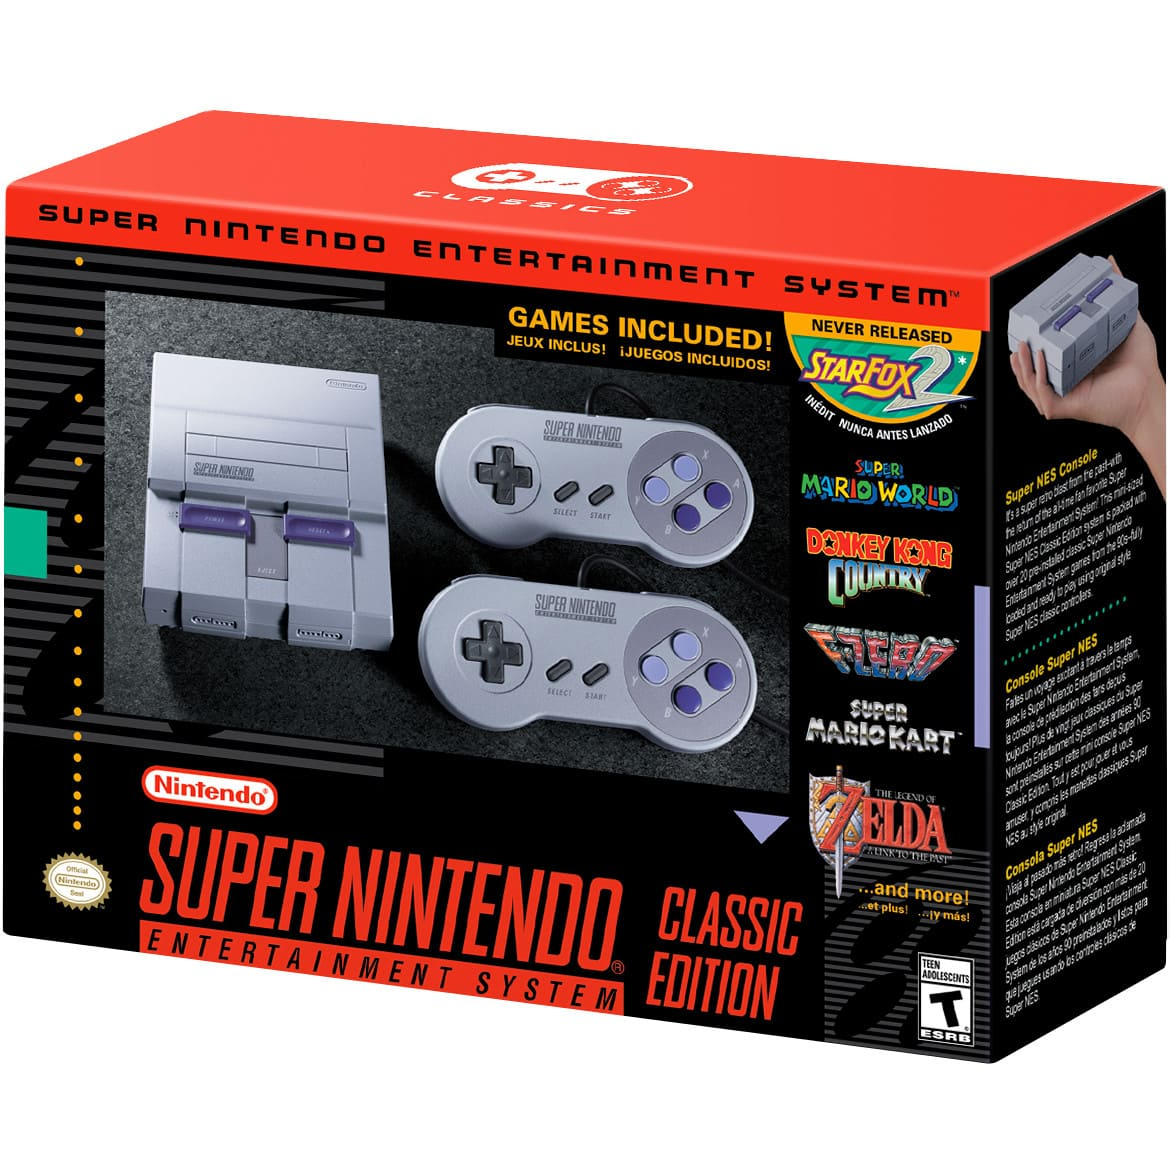 Super NES Classic Edition - Best Buy - 79.99 + tax - Store Pickup YMMV $79.99